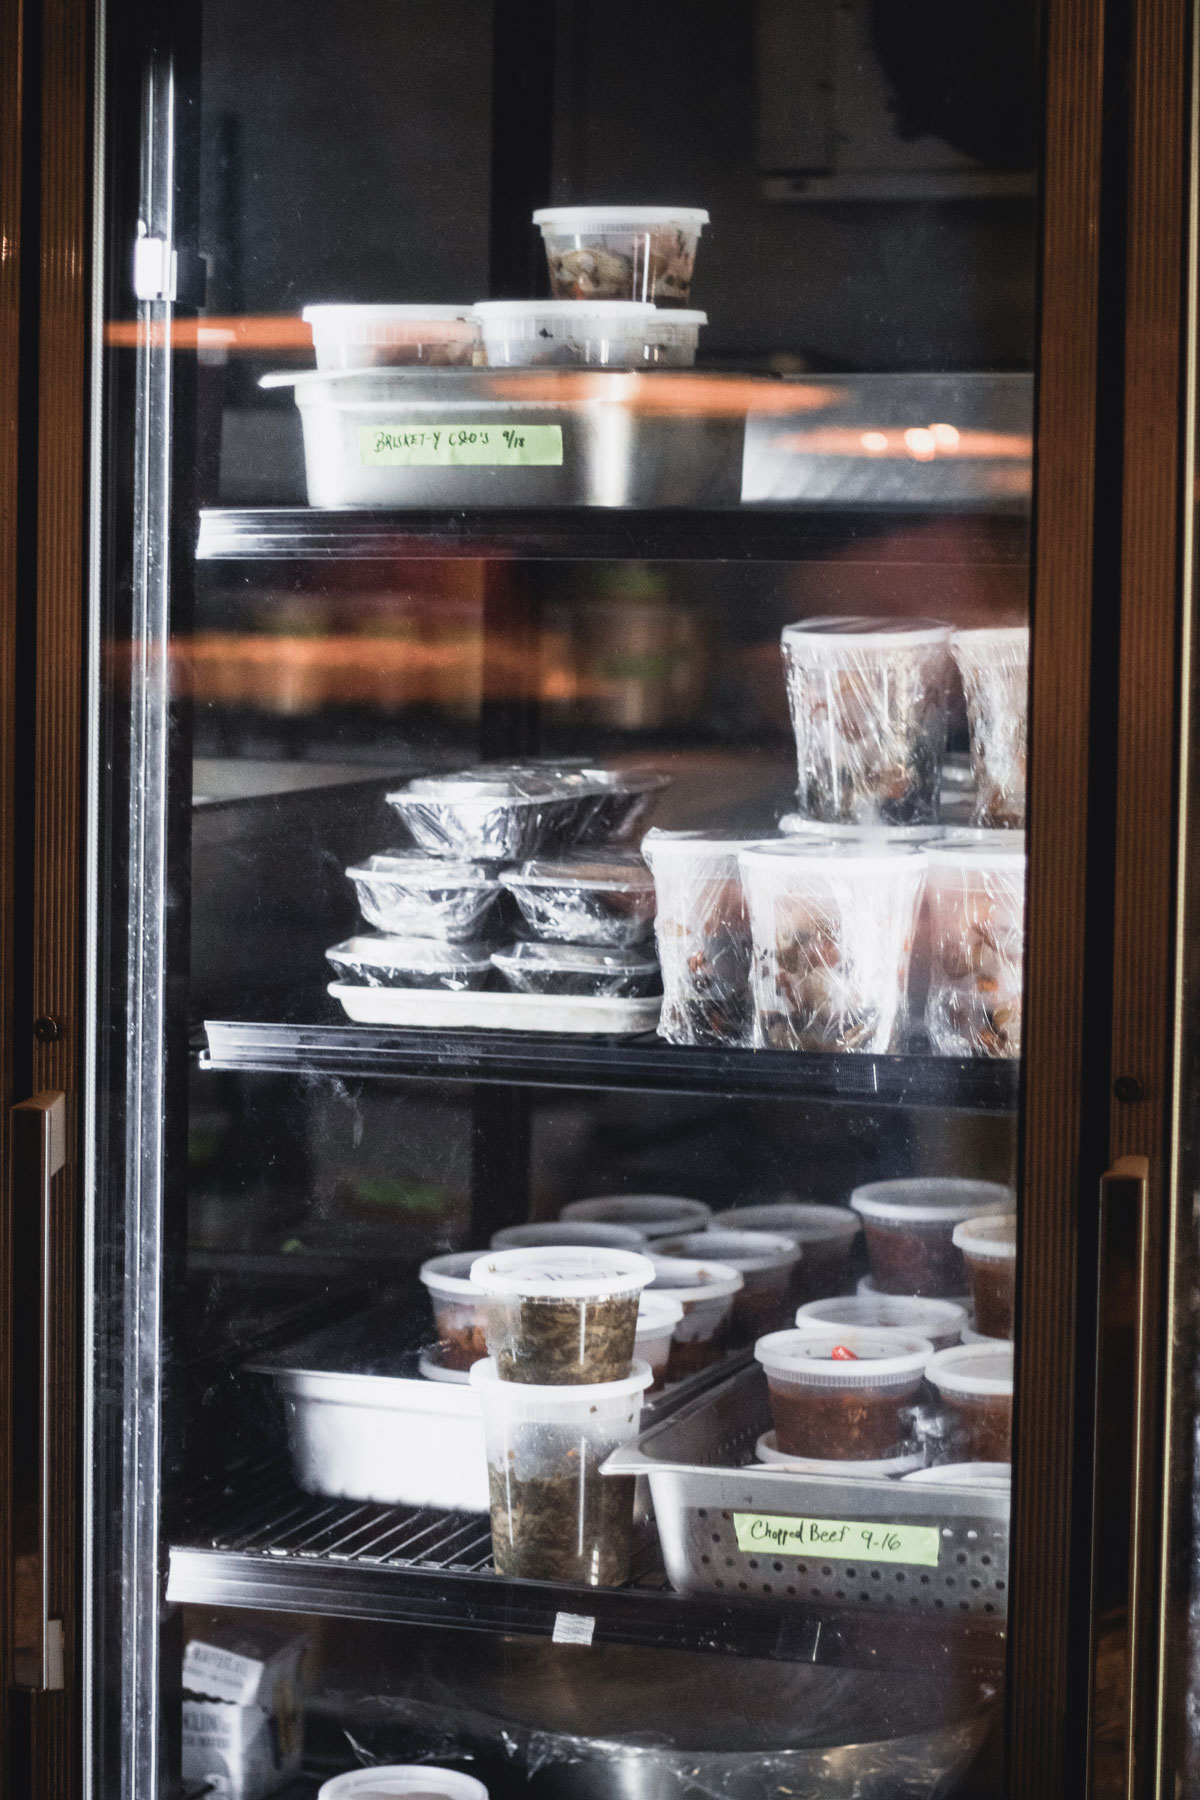 A refrigerator filled with containers of assorted meats, briskets and other eats.